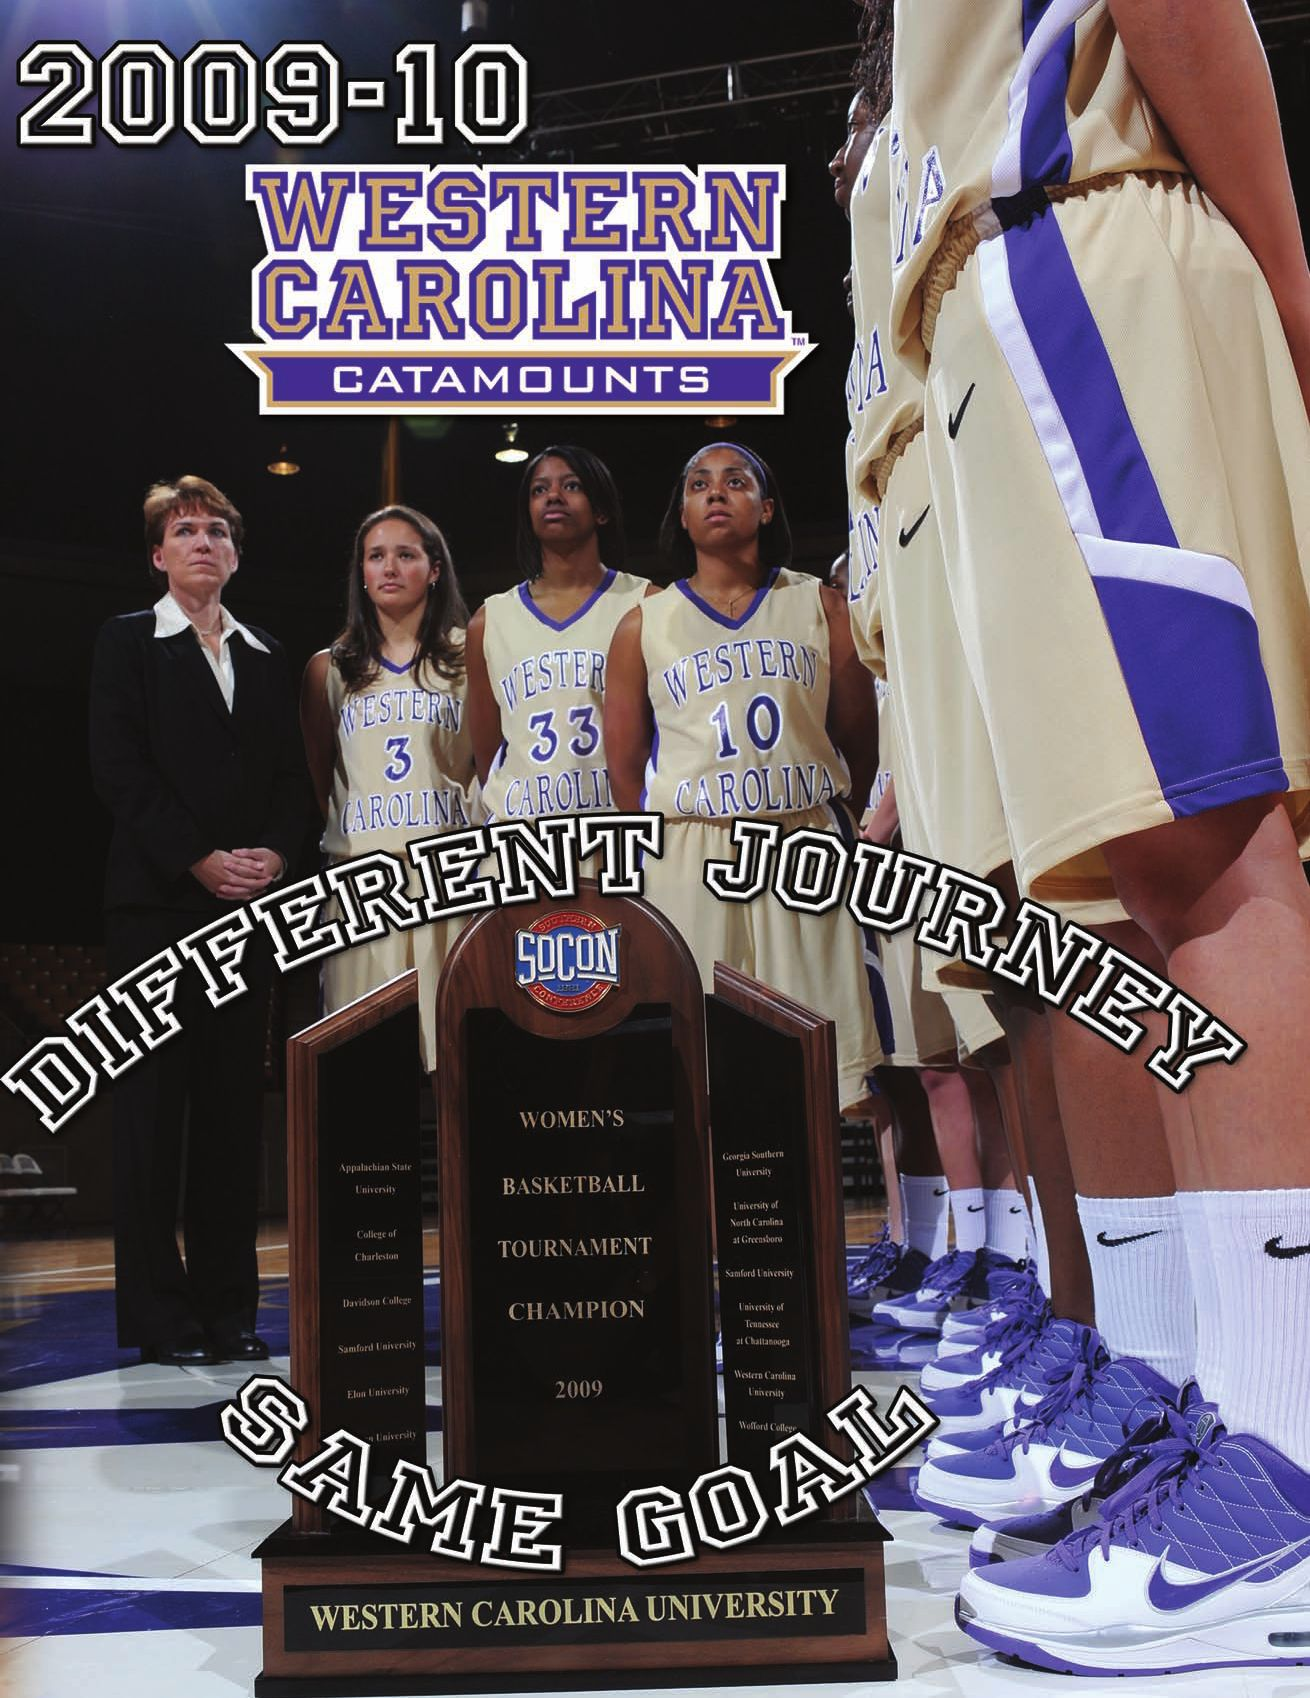 d7903e002969 2009-10 Western Carolina Women s Basketball Guide by Western Carolina  University Athletics - issuu